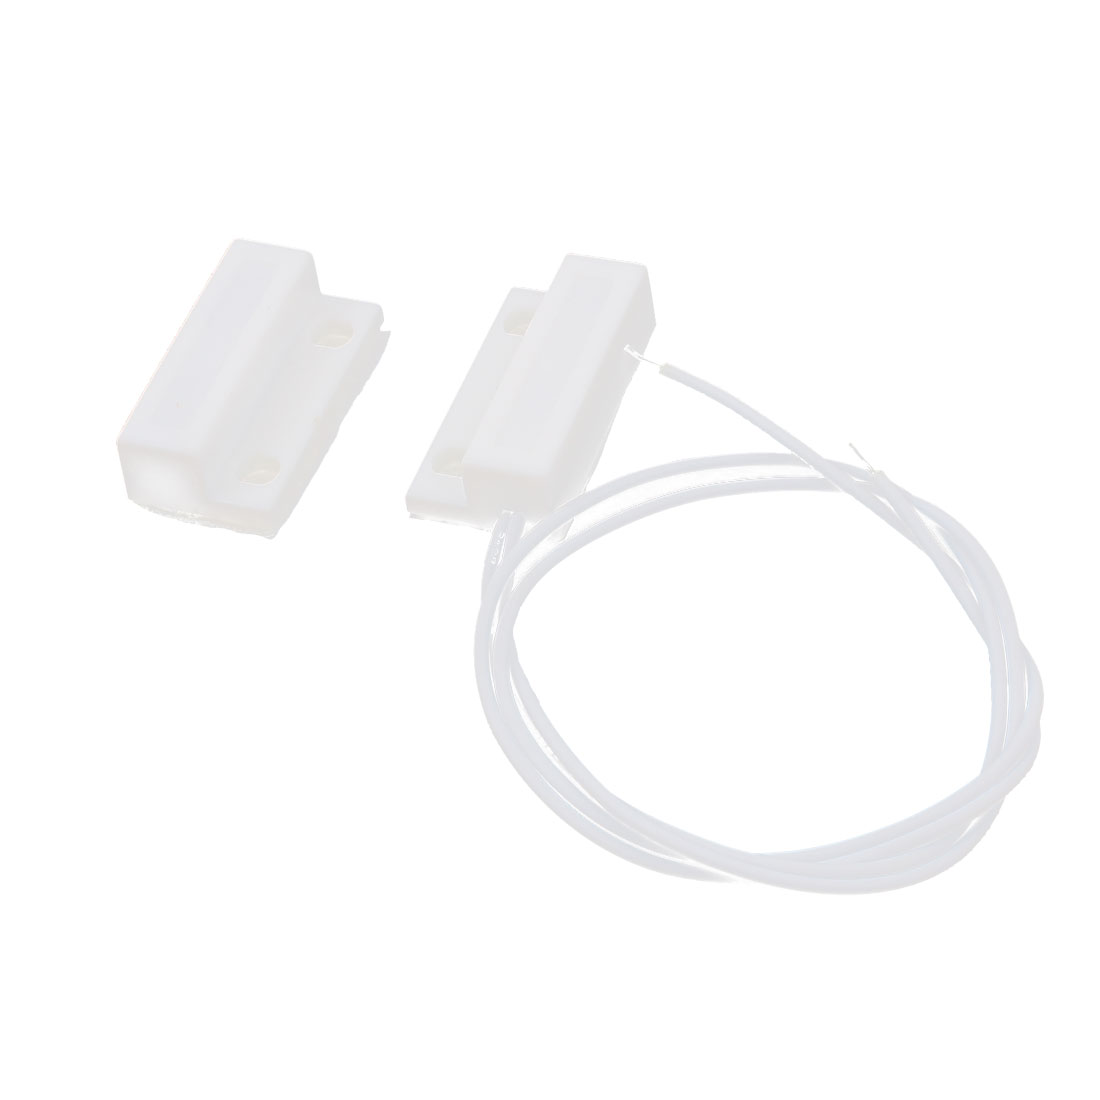 Housing Plastic MC-38 NO Normally Open Window Door Reed Magnetic Contact Switch White Pair